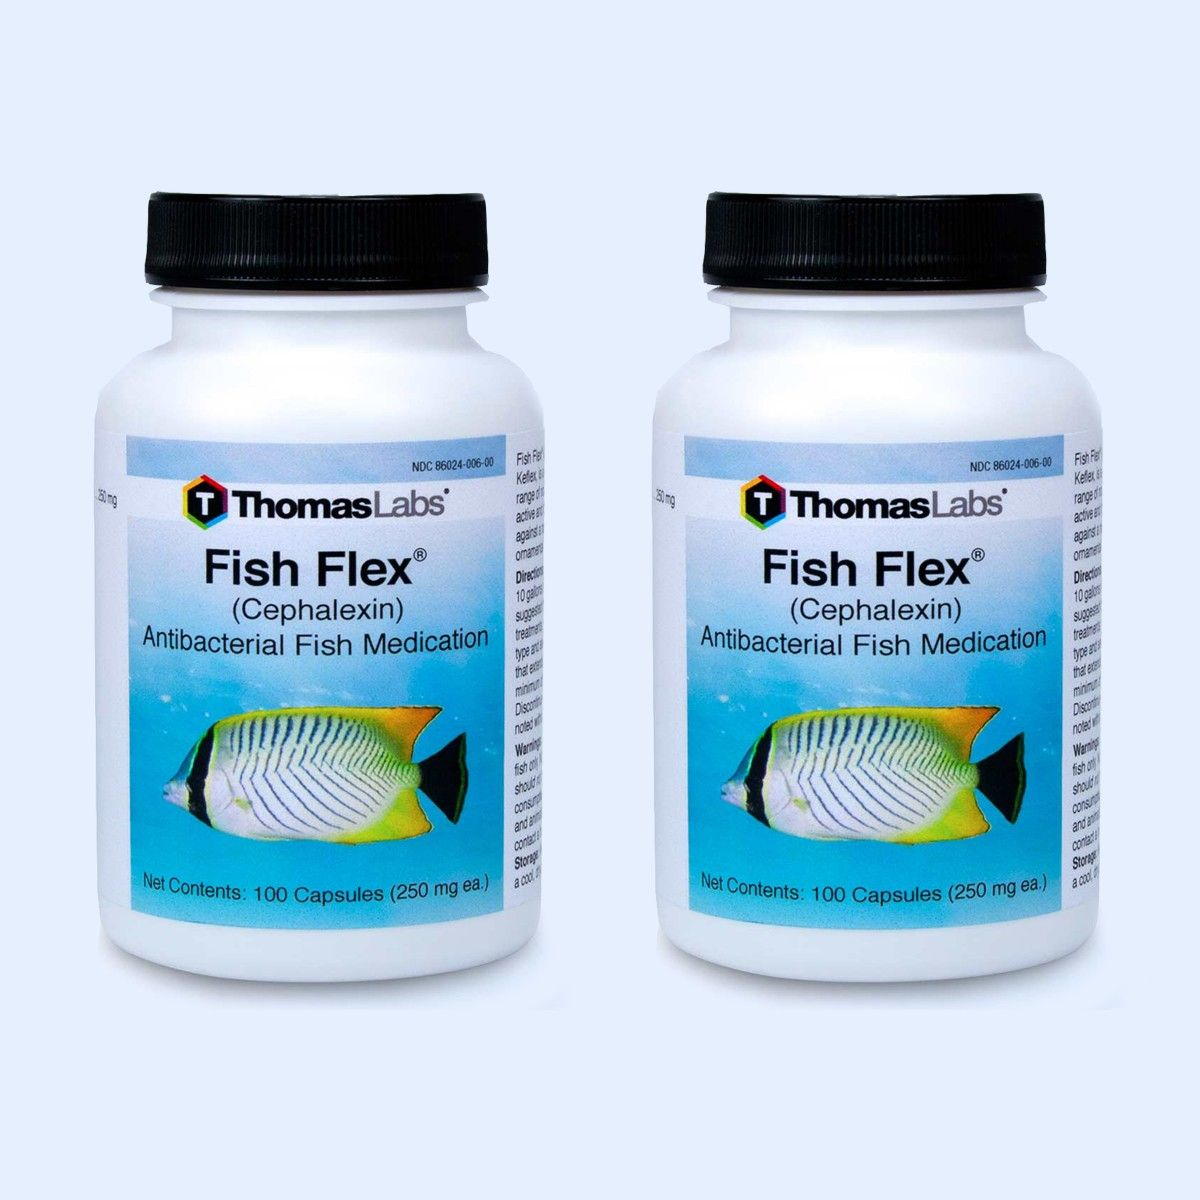 Fish Flex Capsules - 100 Count (Cephalexin 250 Mg) - 2 Pack